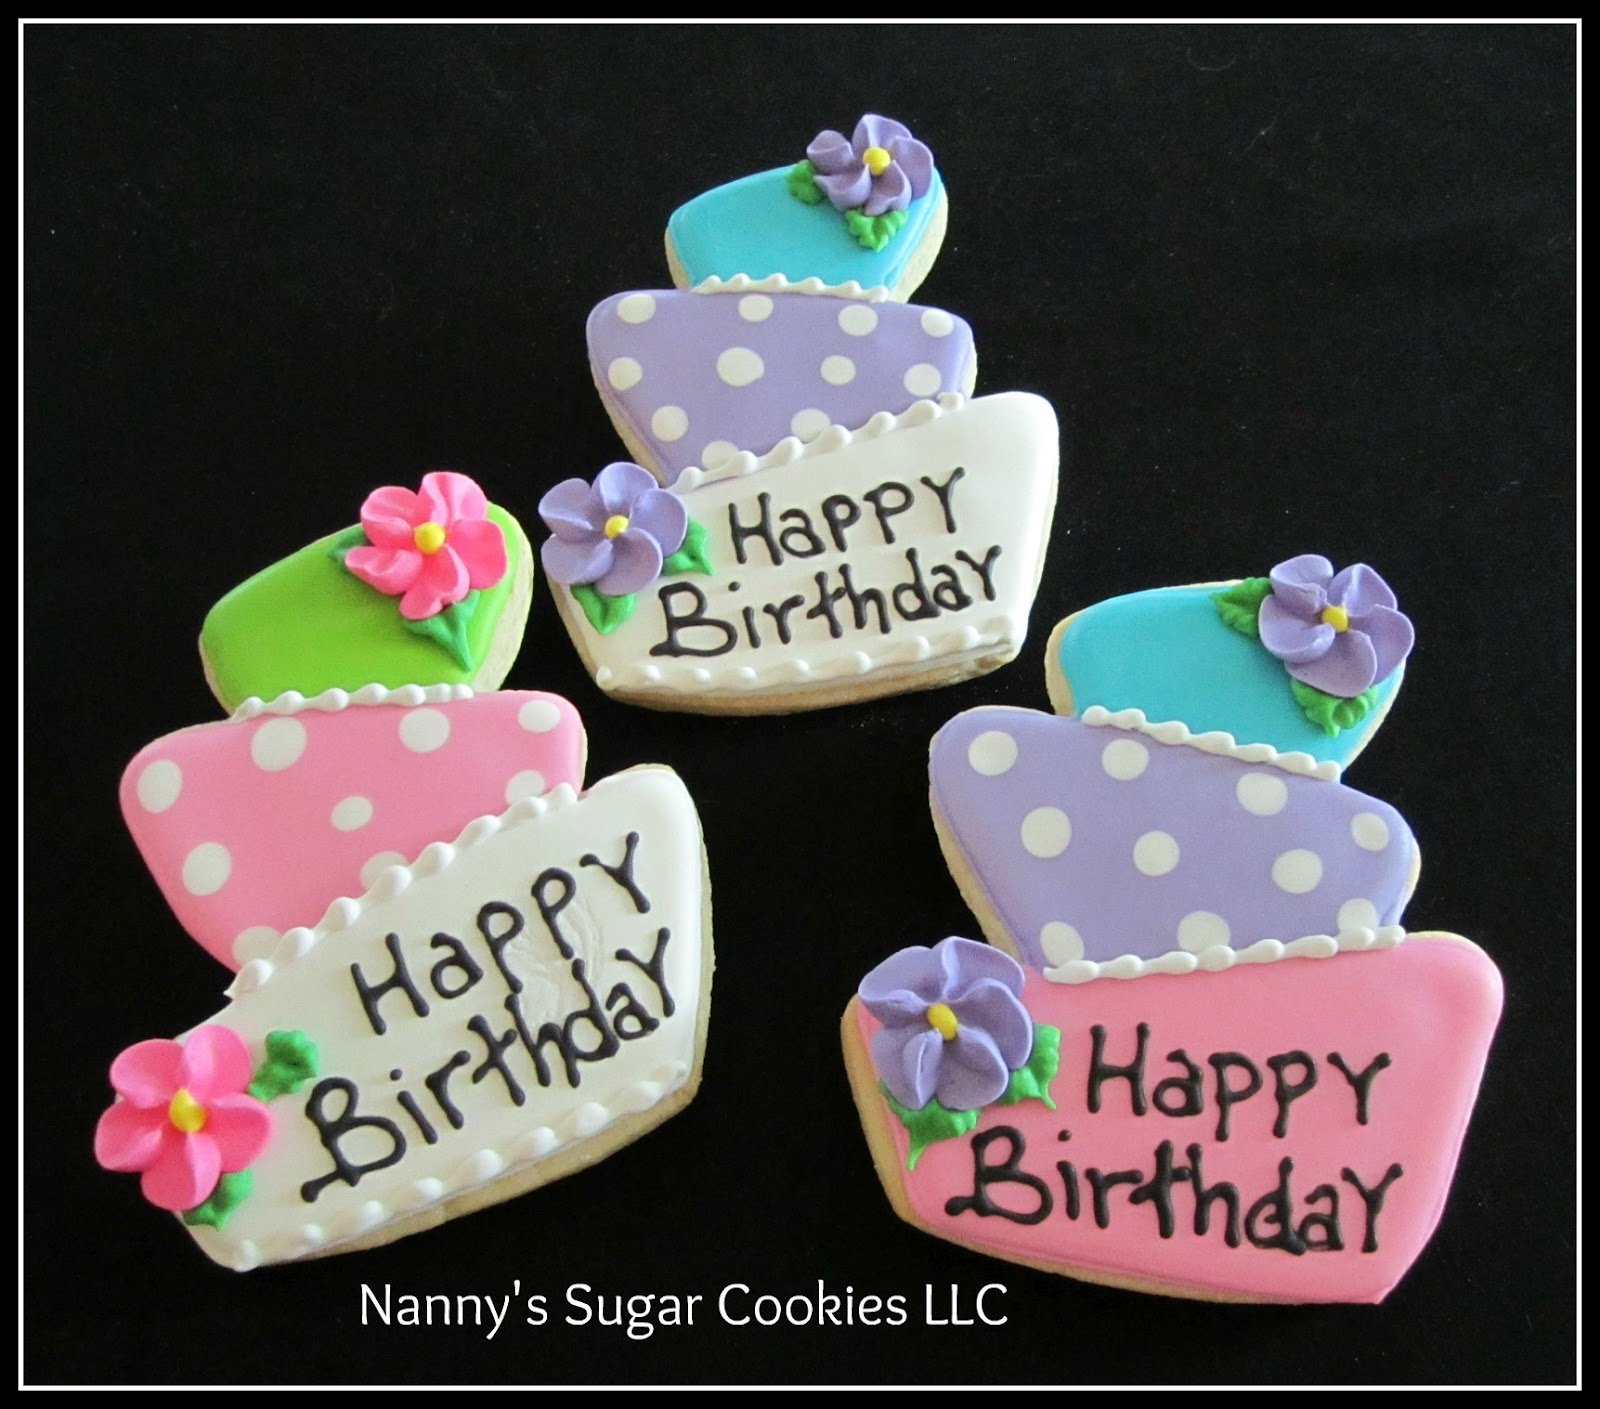 Nanny's Sugar Cookies LLC: Birthday Cookie Favors